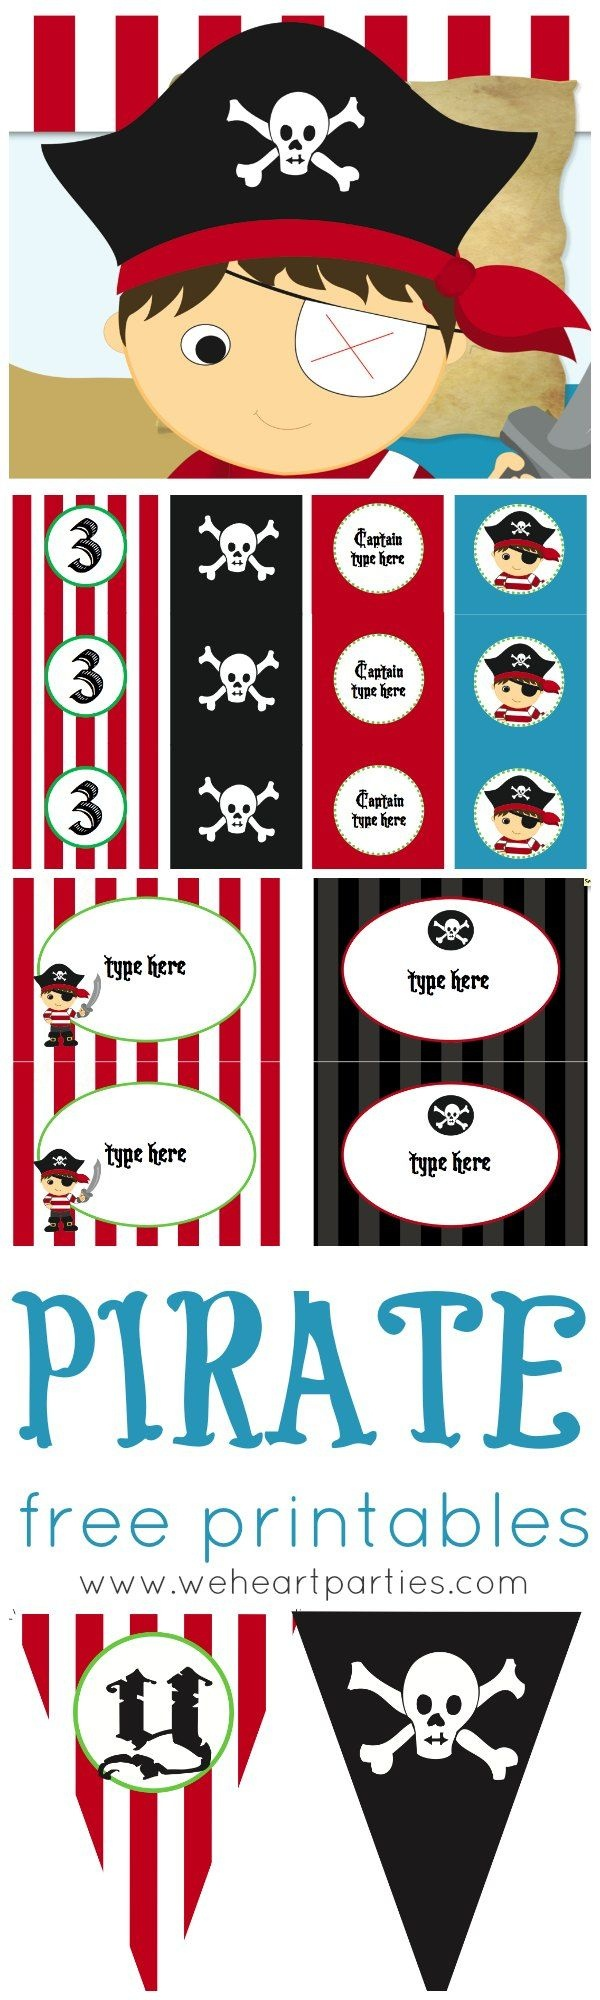 Free Pirate Party Printables (Editable With Child's Name And Age Too - Free Printable Pirate Cupcake Toppers